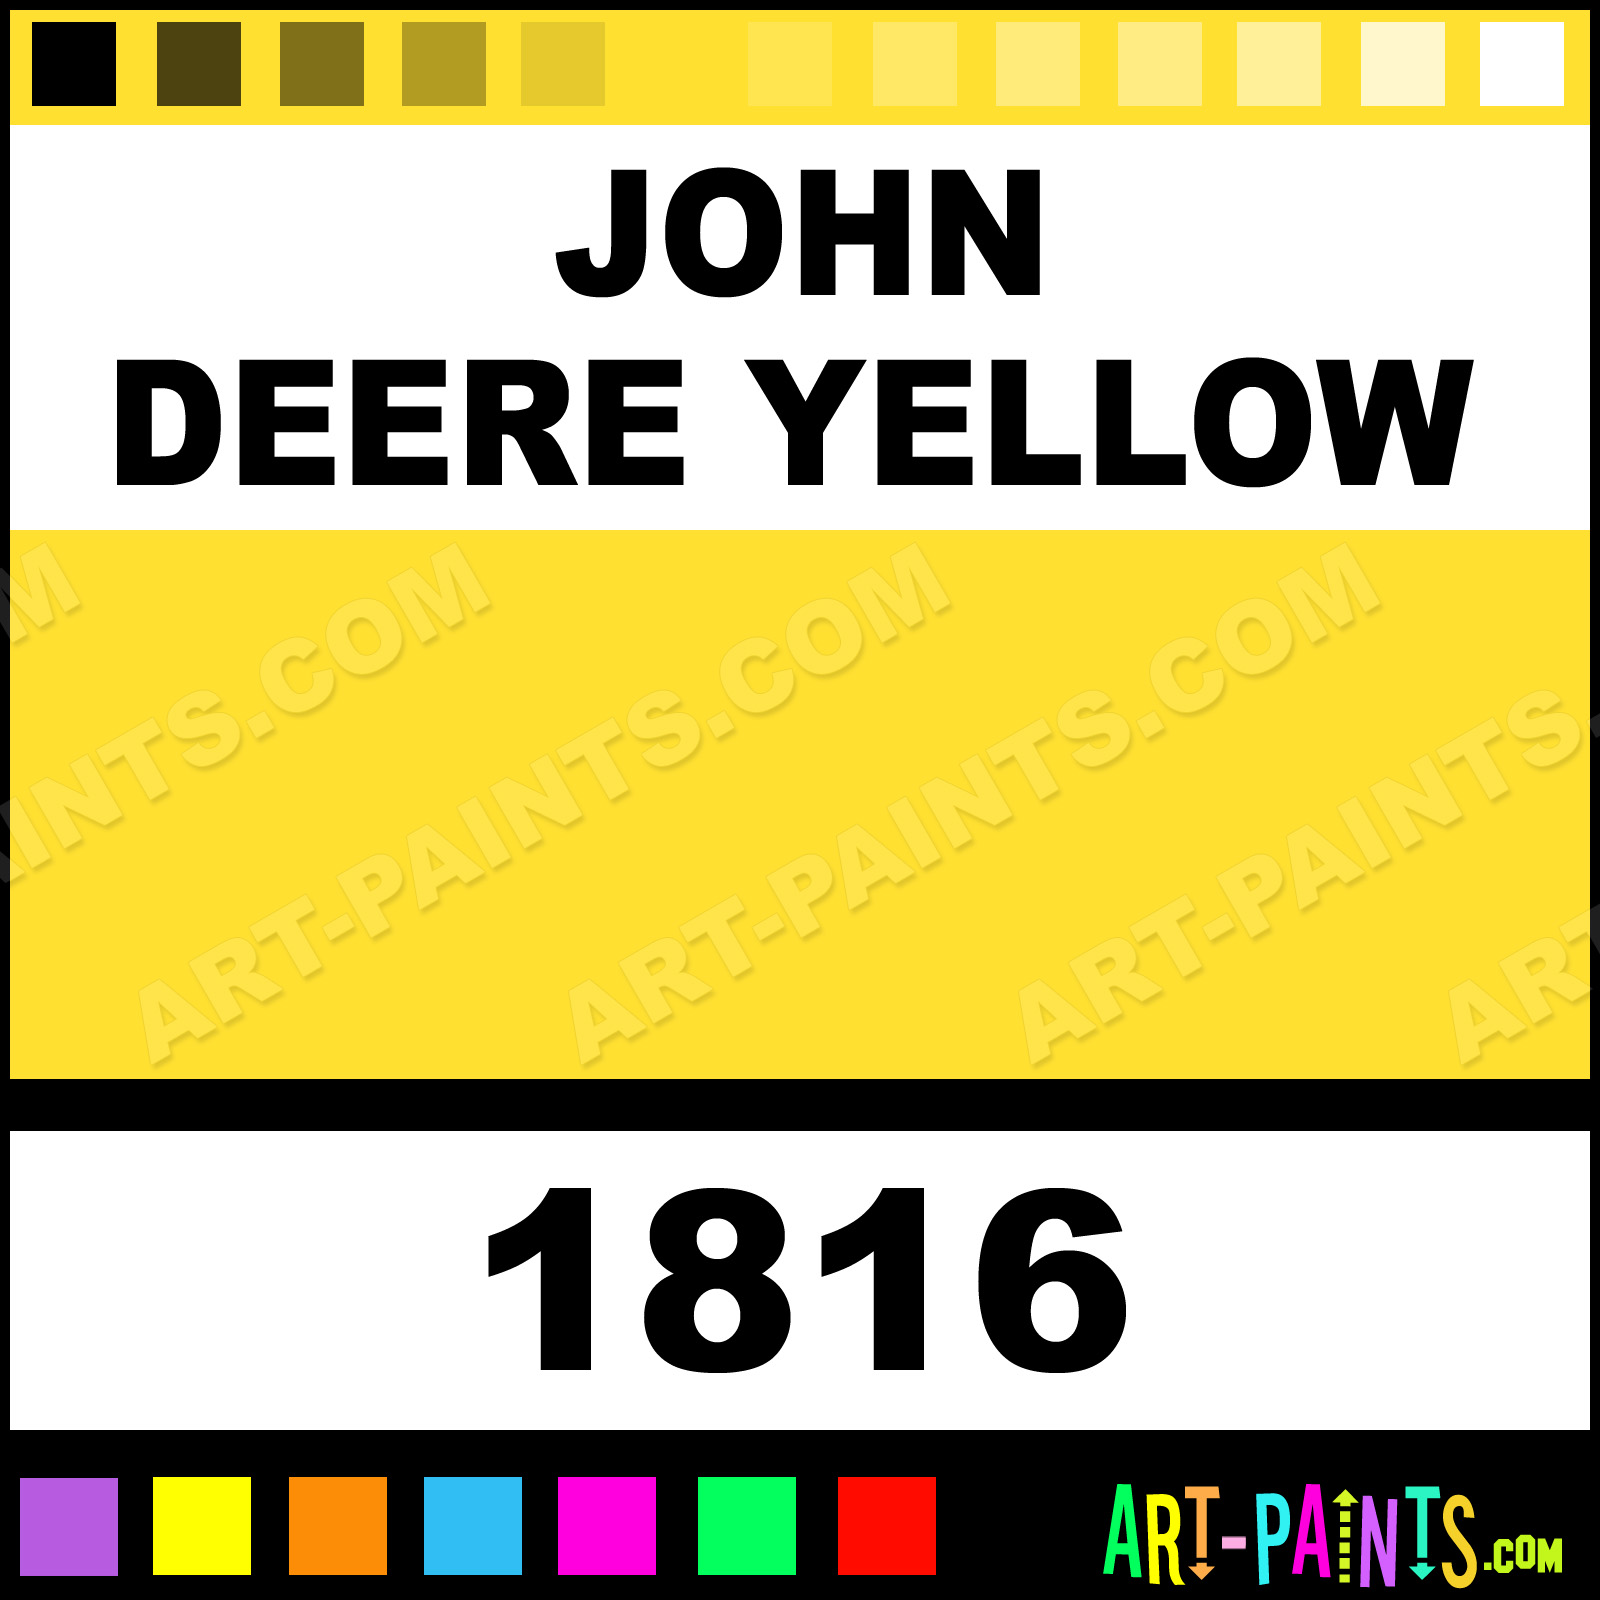 John Deere Room Paint Colors http://www.art-paints.com/Paints/Spray/Krylon/Farm-and-Implement/John-Deere-Yellow/John-Deere-Yellow.html